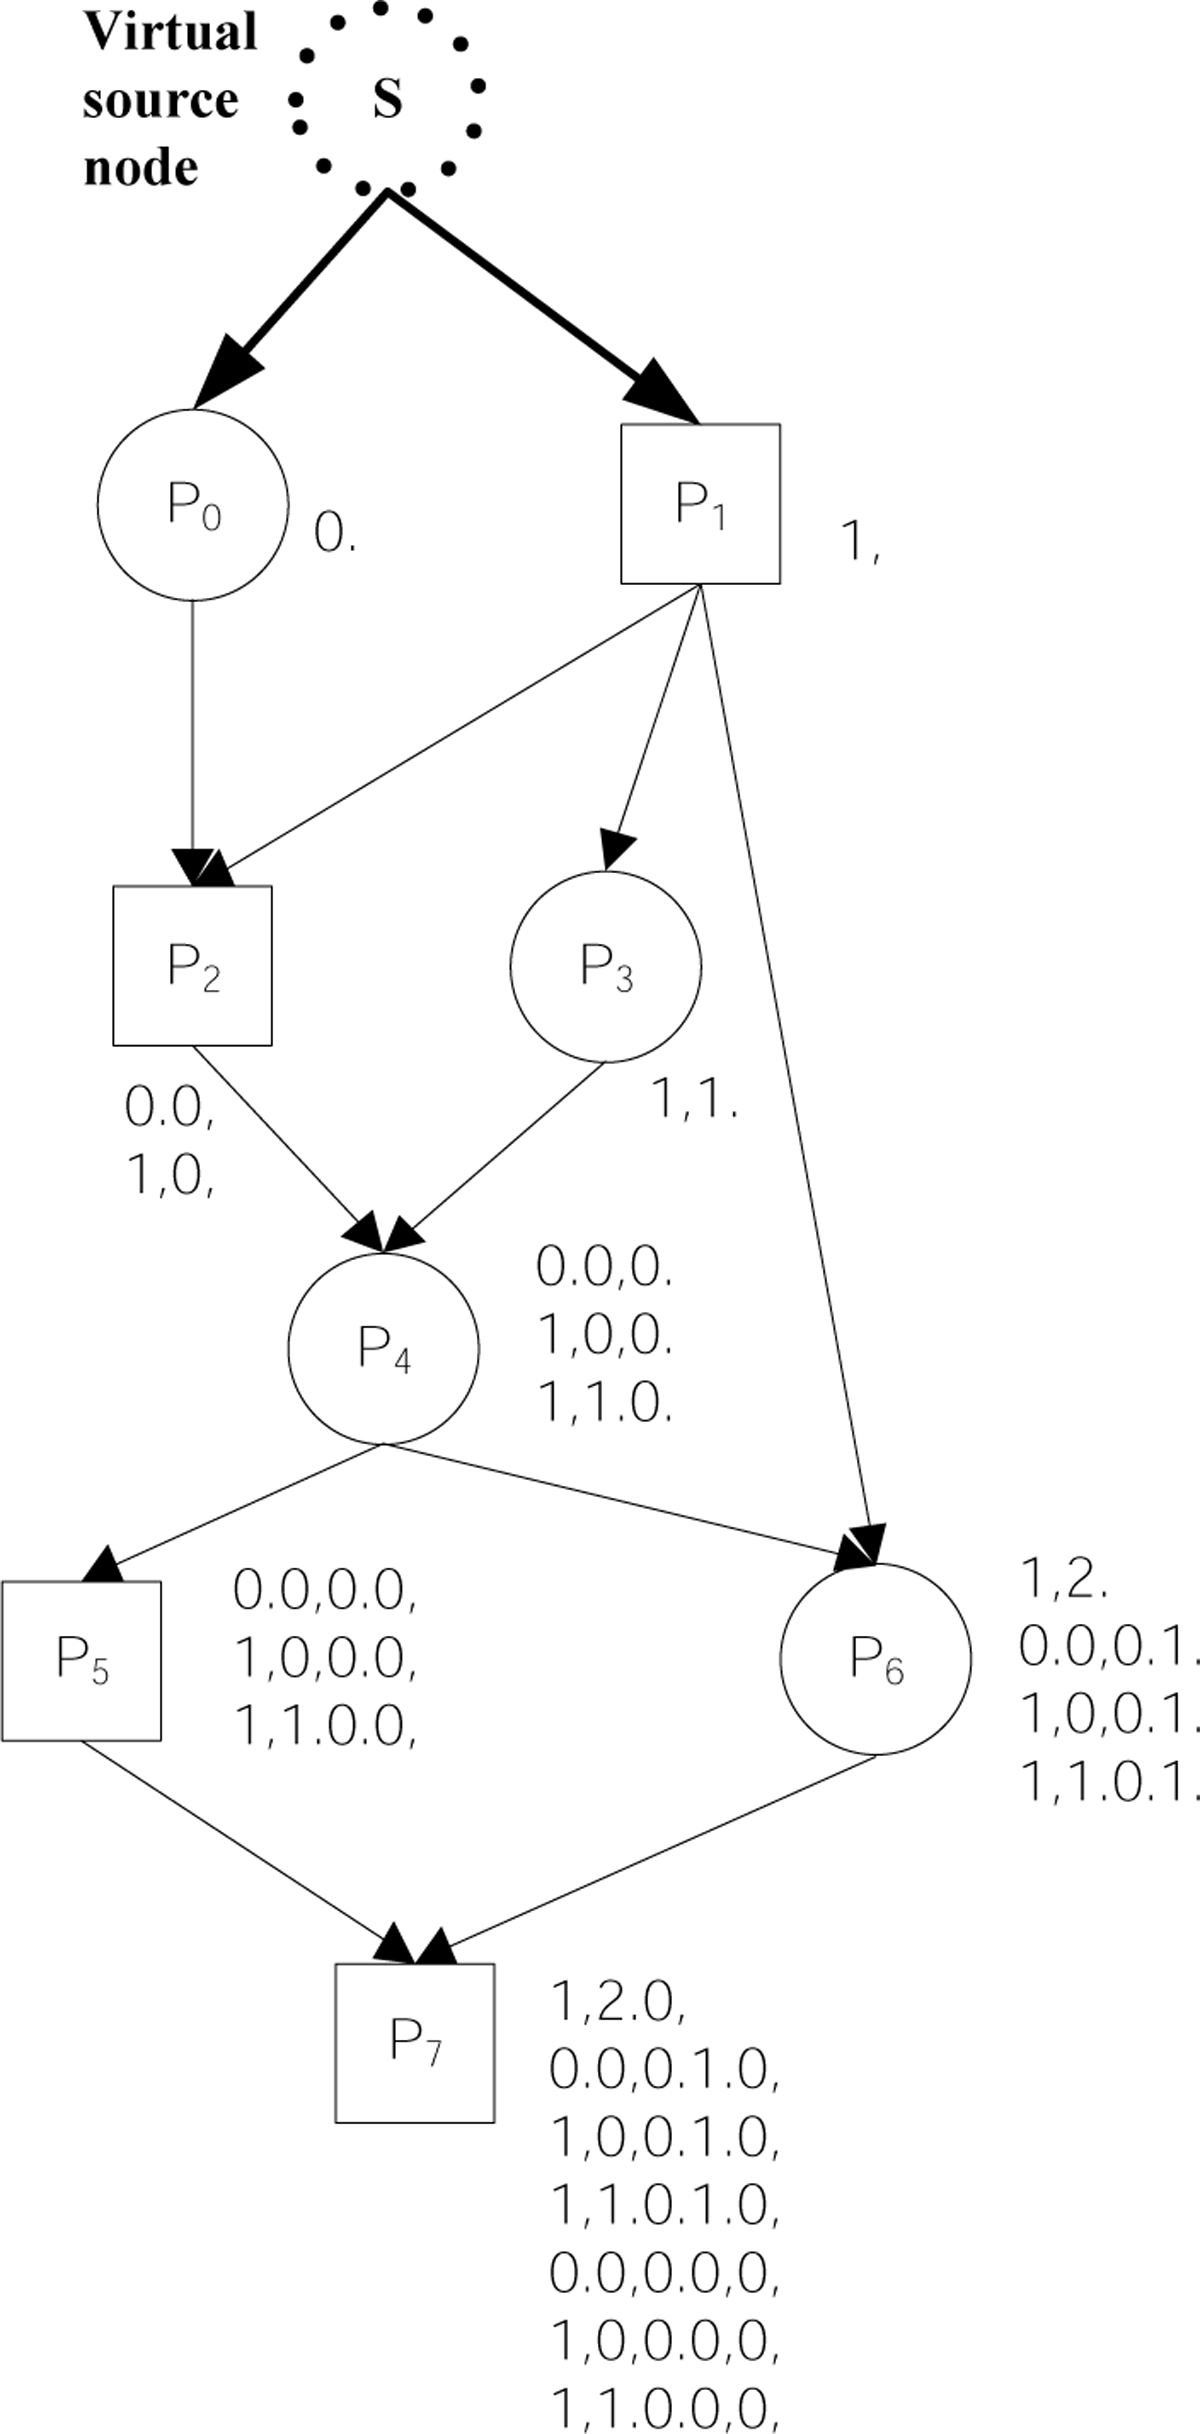 https://static-content.springer.com/image/art%3A10.1186%2F1471-2105-13-S3-S14/MediaObjects/12859_2012_Article_5092_Fig2_HTML.jpg